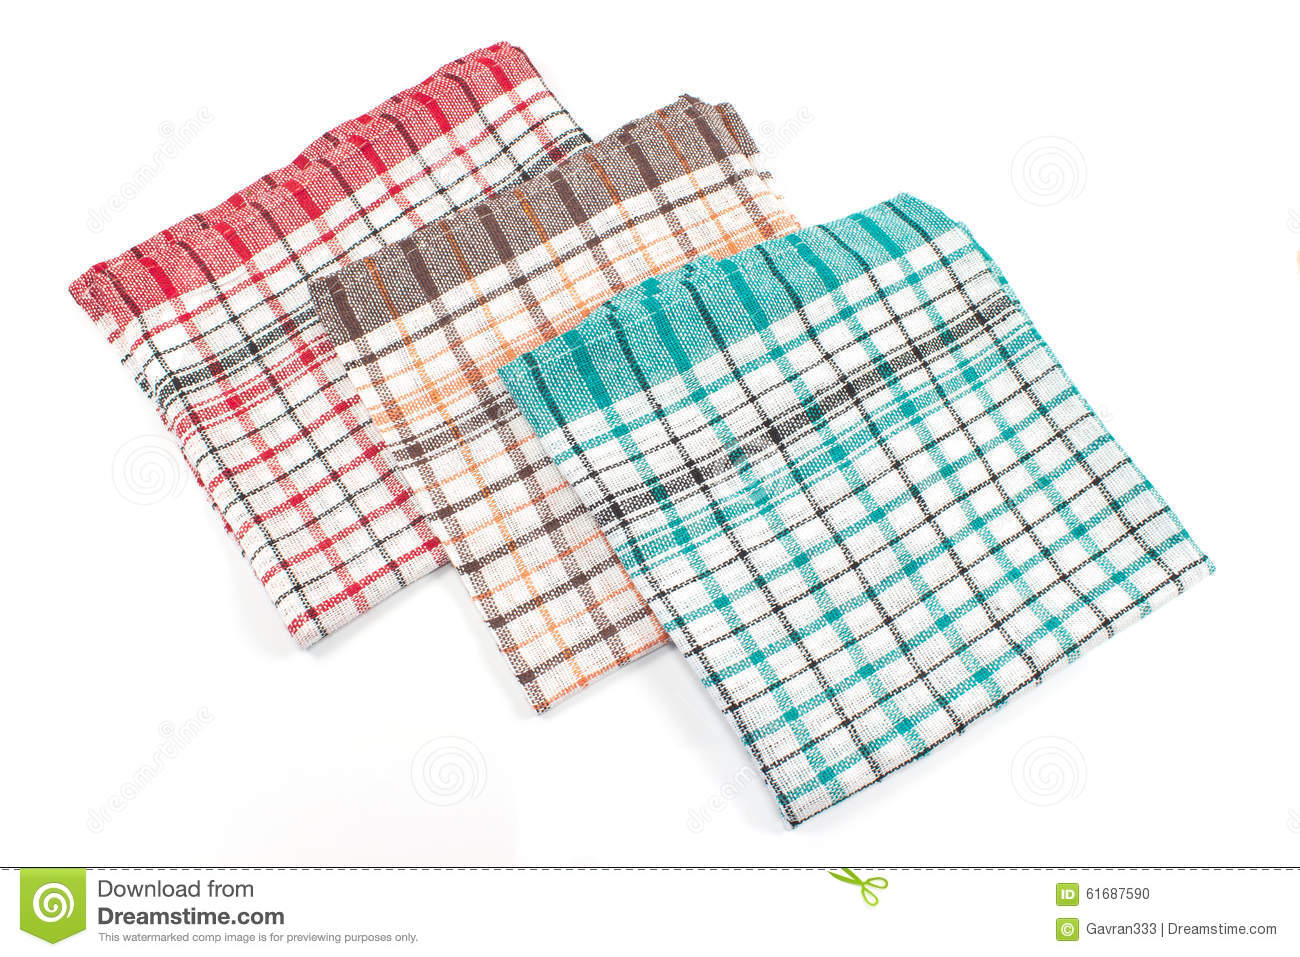 Colorful kitchen towels stock photo. Image of organic - 61687590